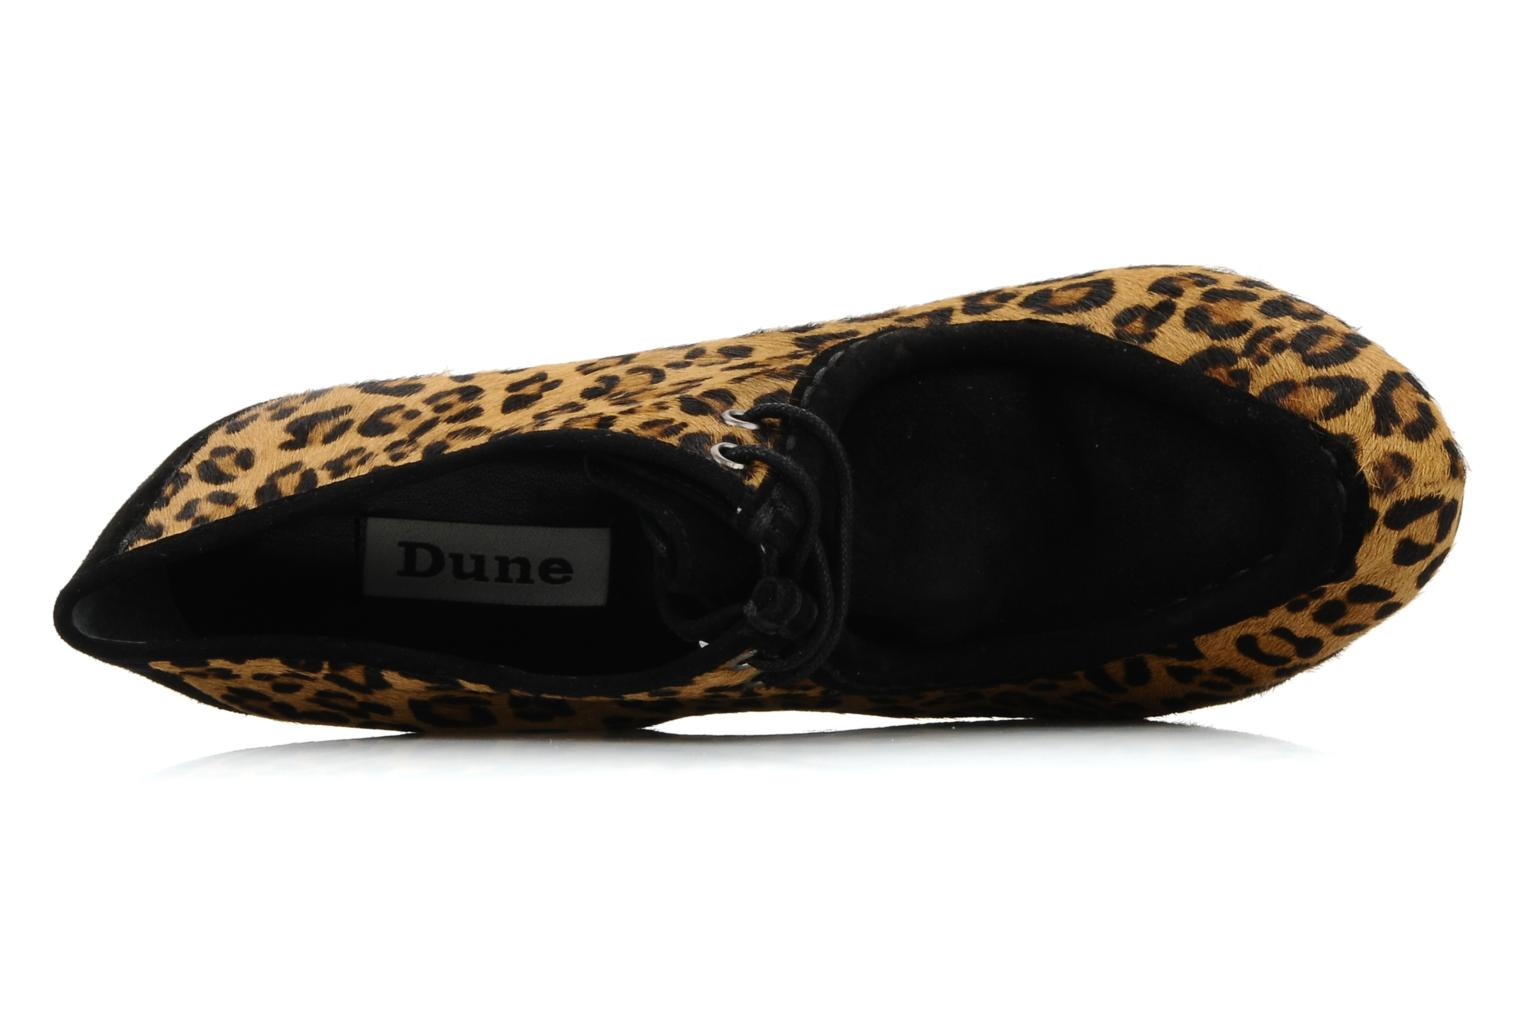 Hilly London Dune Hilly Leopard comb London Dune adSq0w6tct